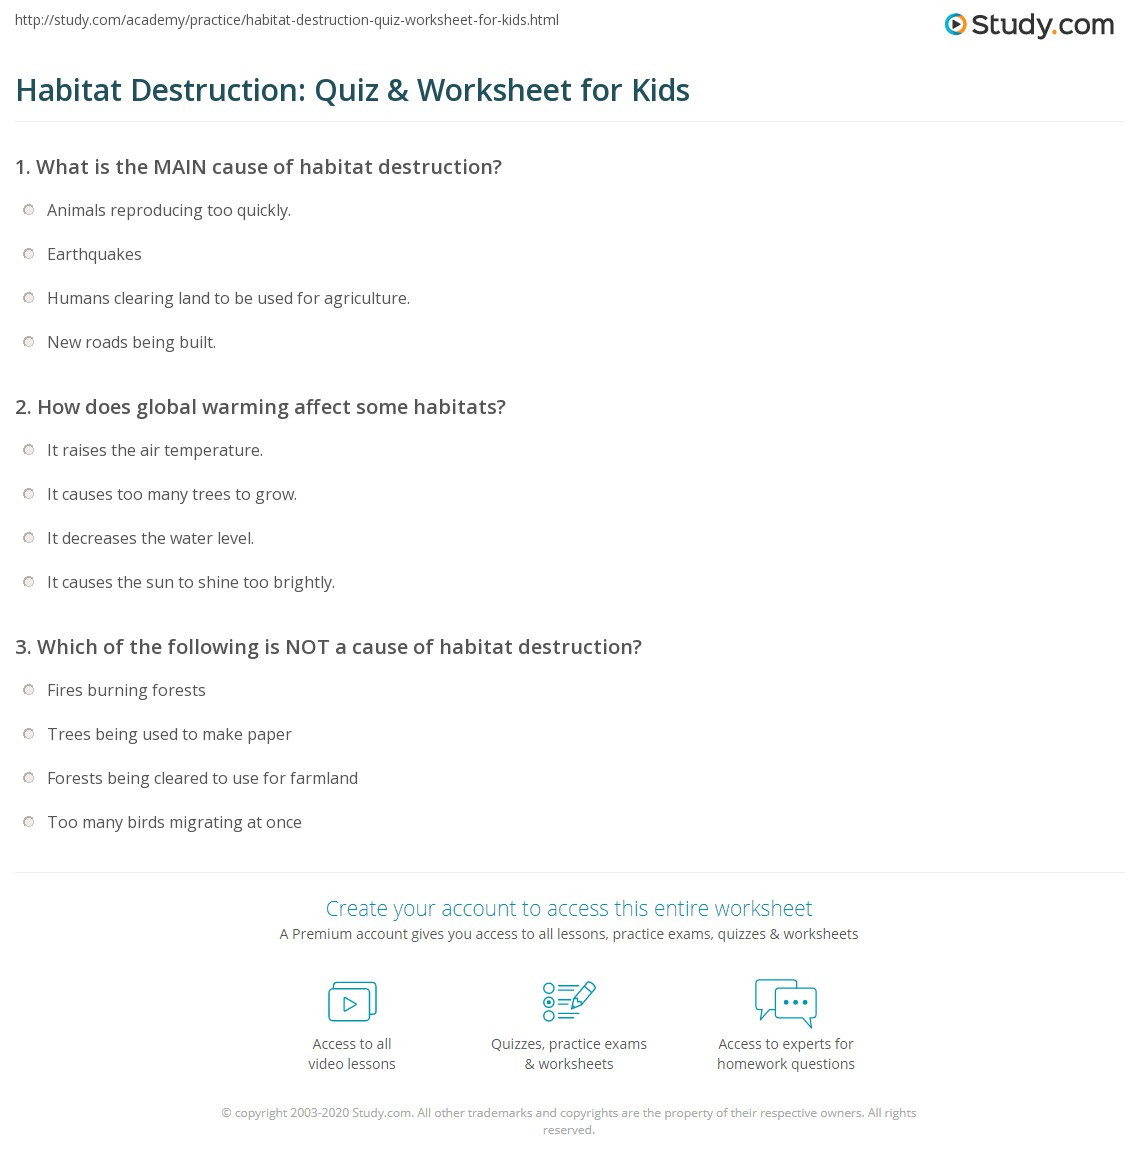 3rd Grade Habitat Worksheets Habitat Destruction Quiz & Worksheet for Kids